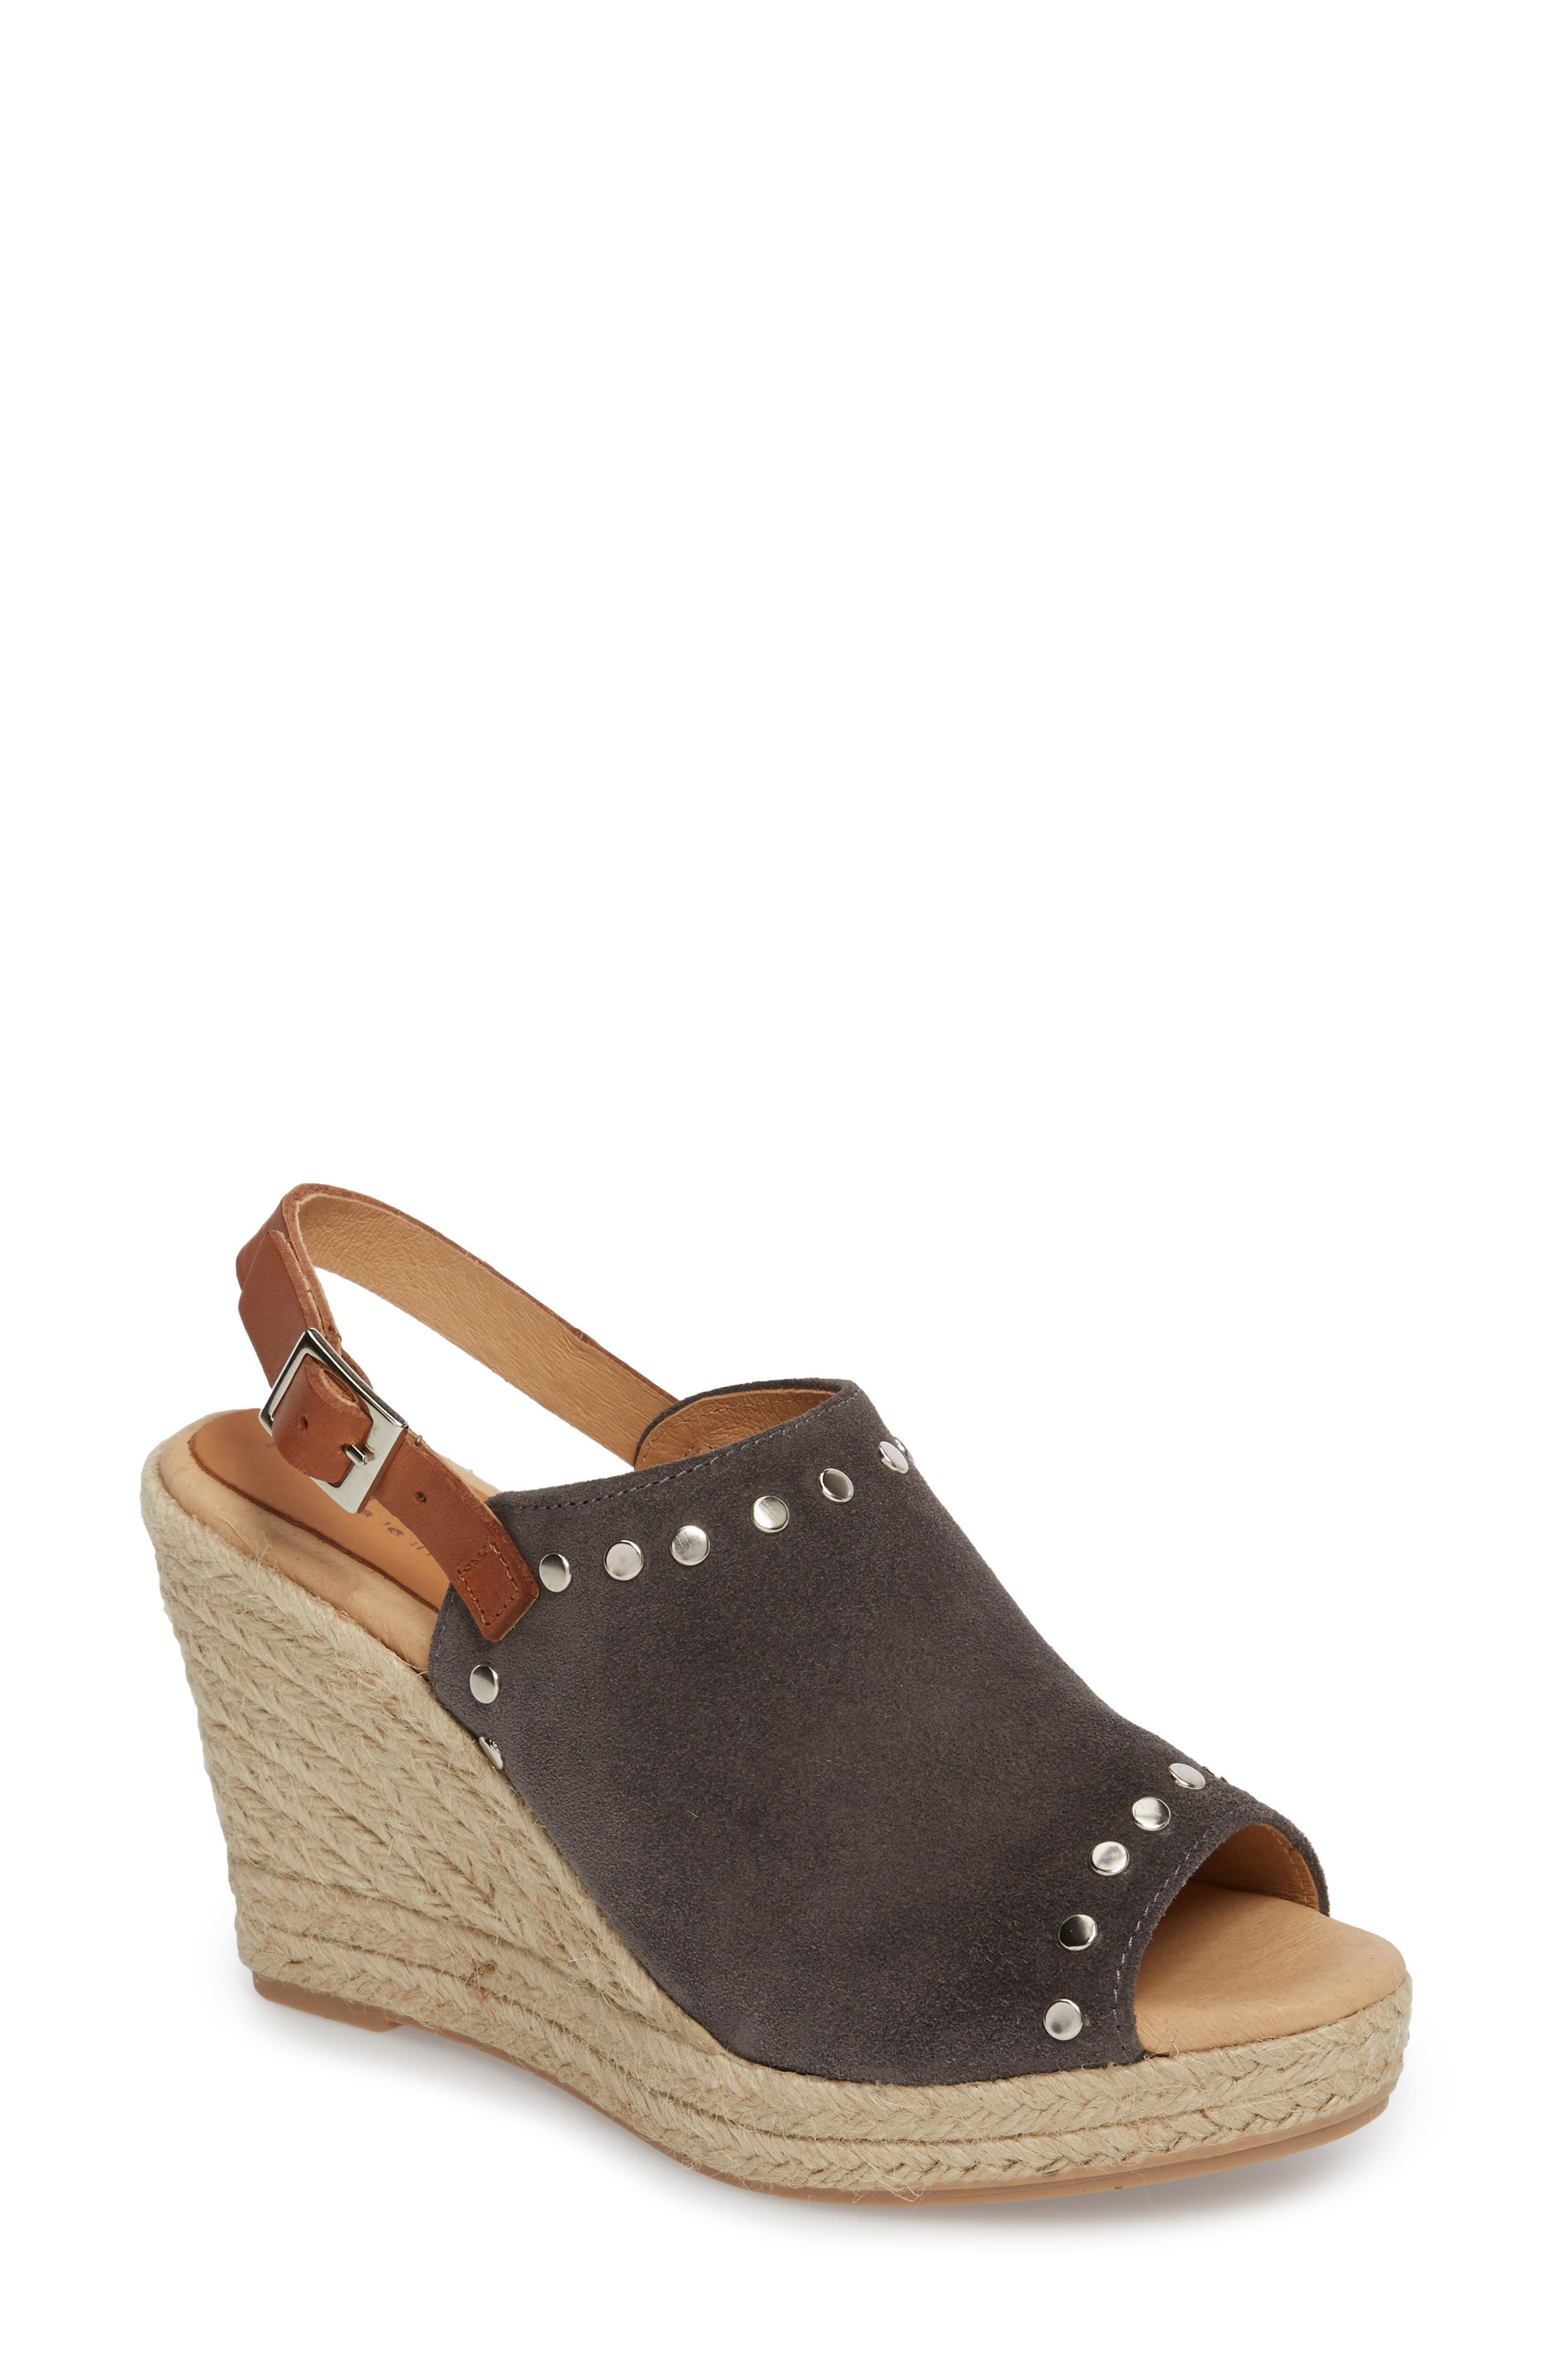 Rockstar Espadrille Wedge Sandal,                             Main thumbnail 1, color,                             CHARCOAL SUEDE